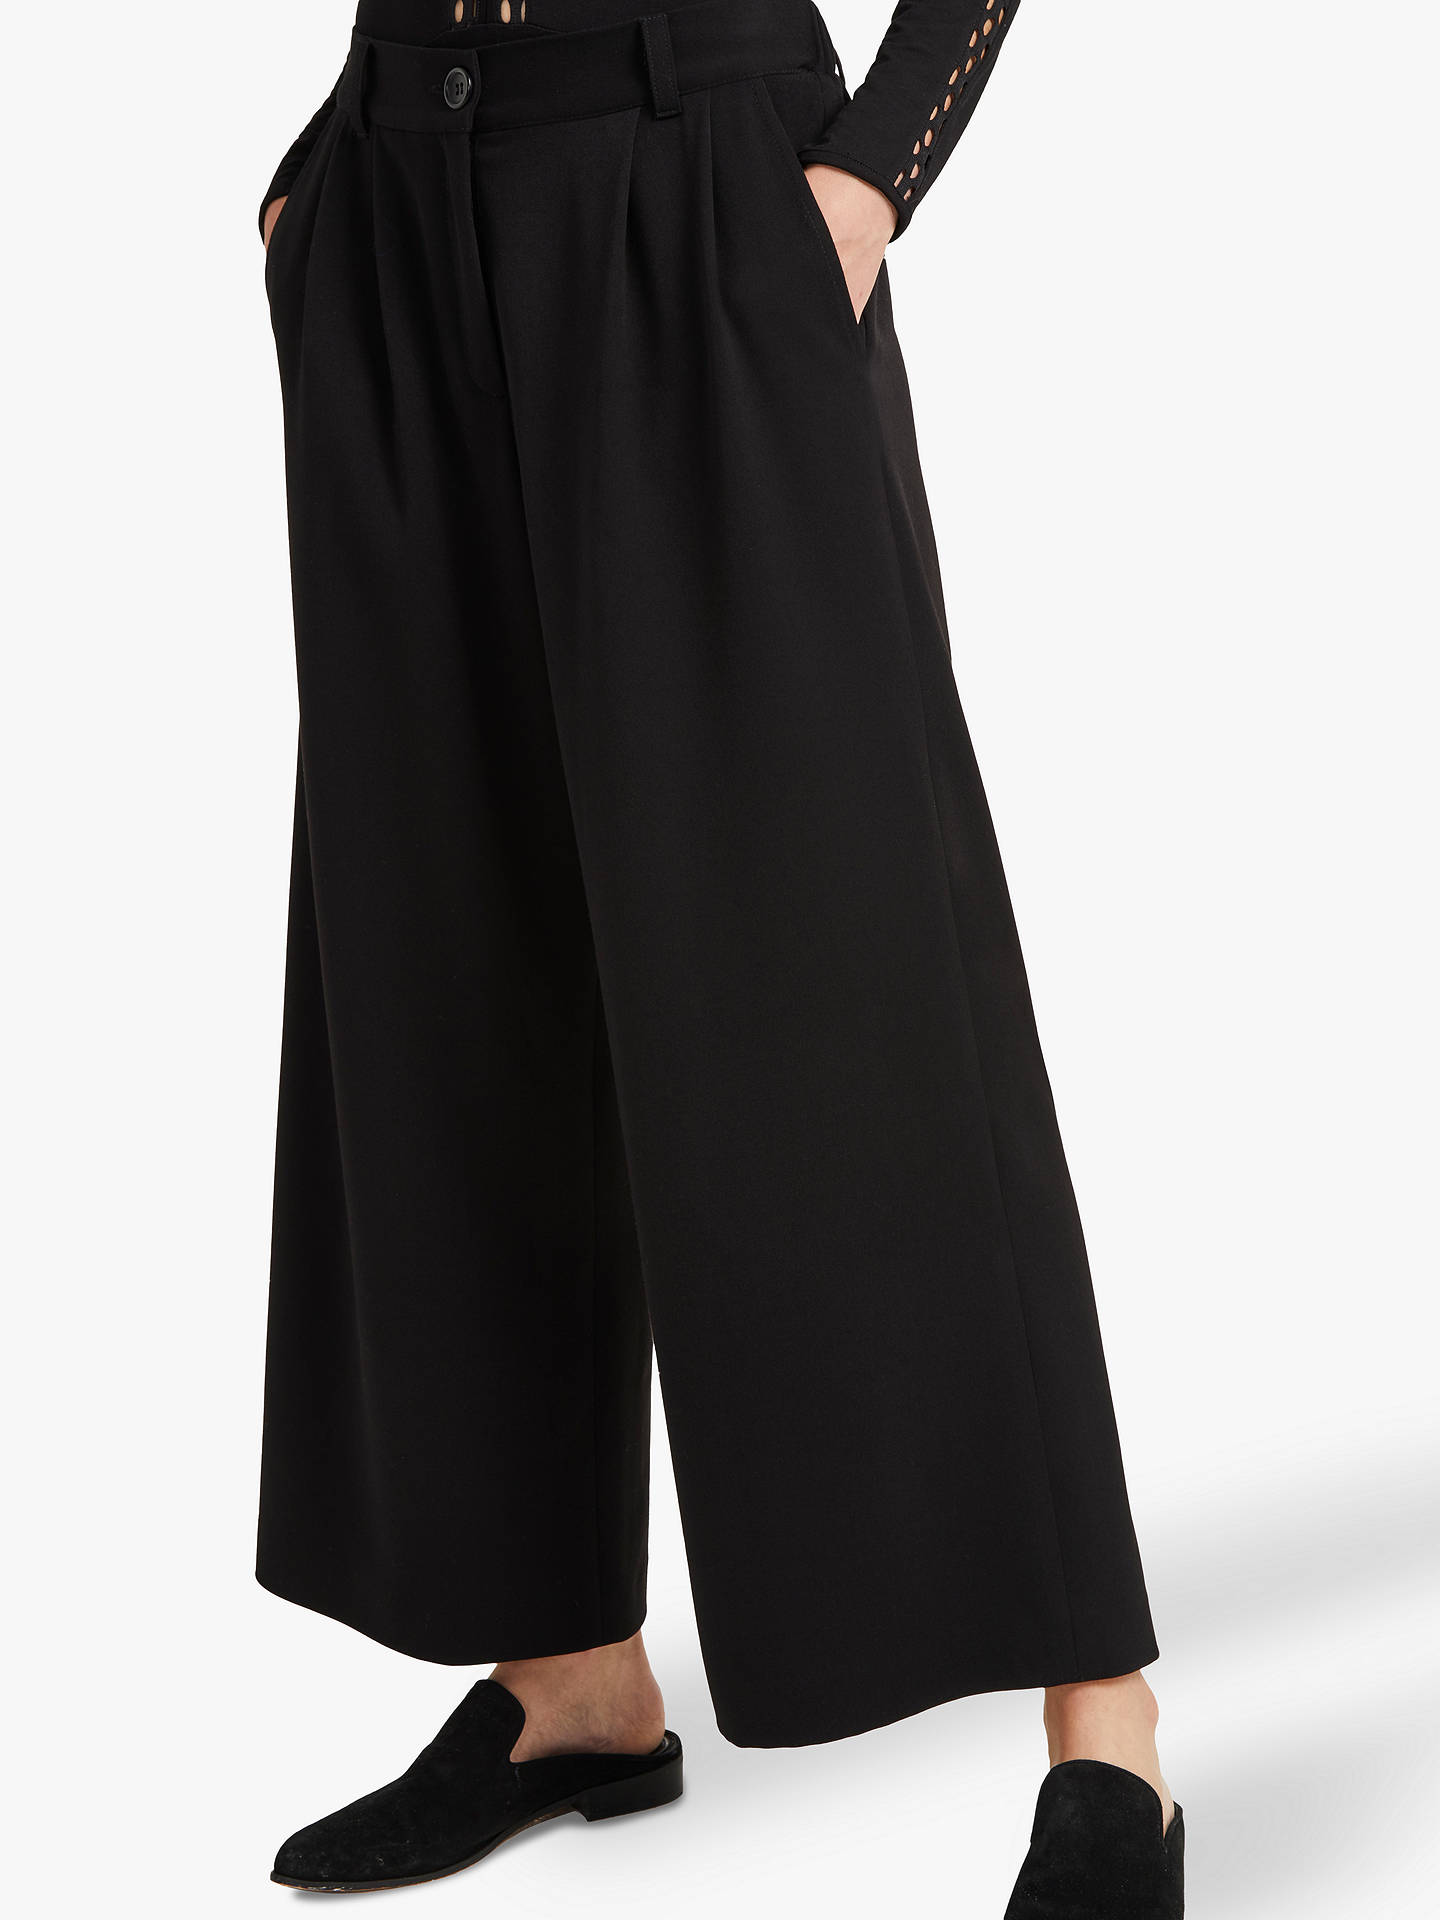 1b61ca7530d Buy French Connection Angeline Wide Leg Trousers, Black, 8 Online at  johnlewis.com ...